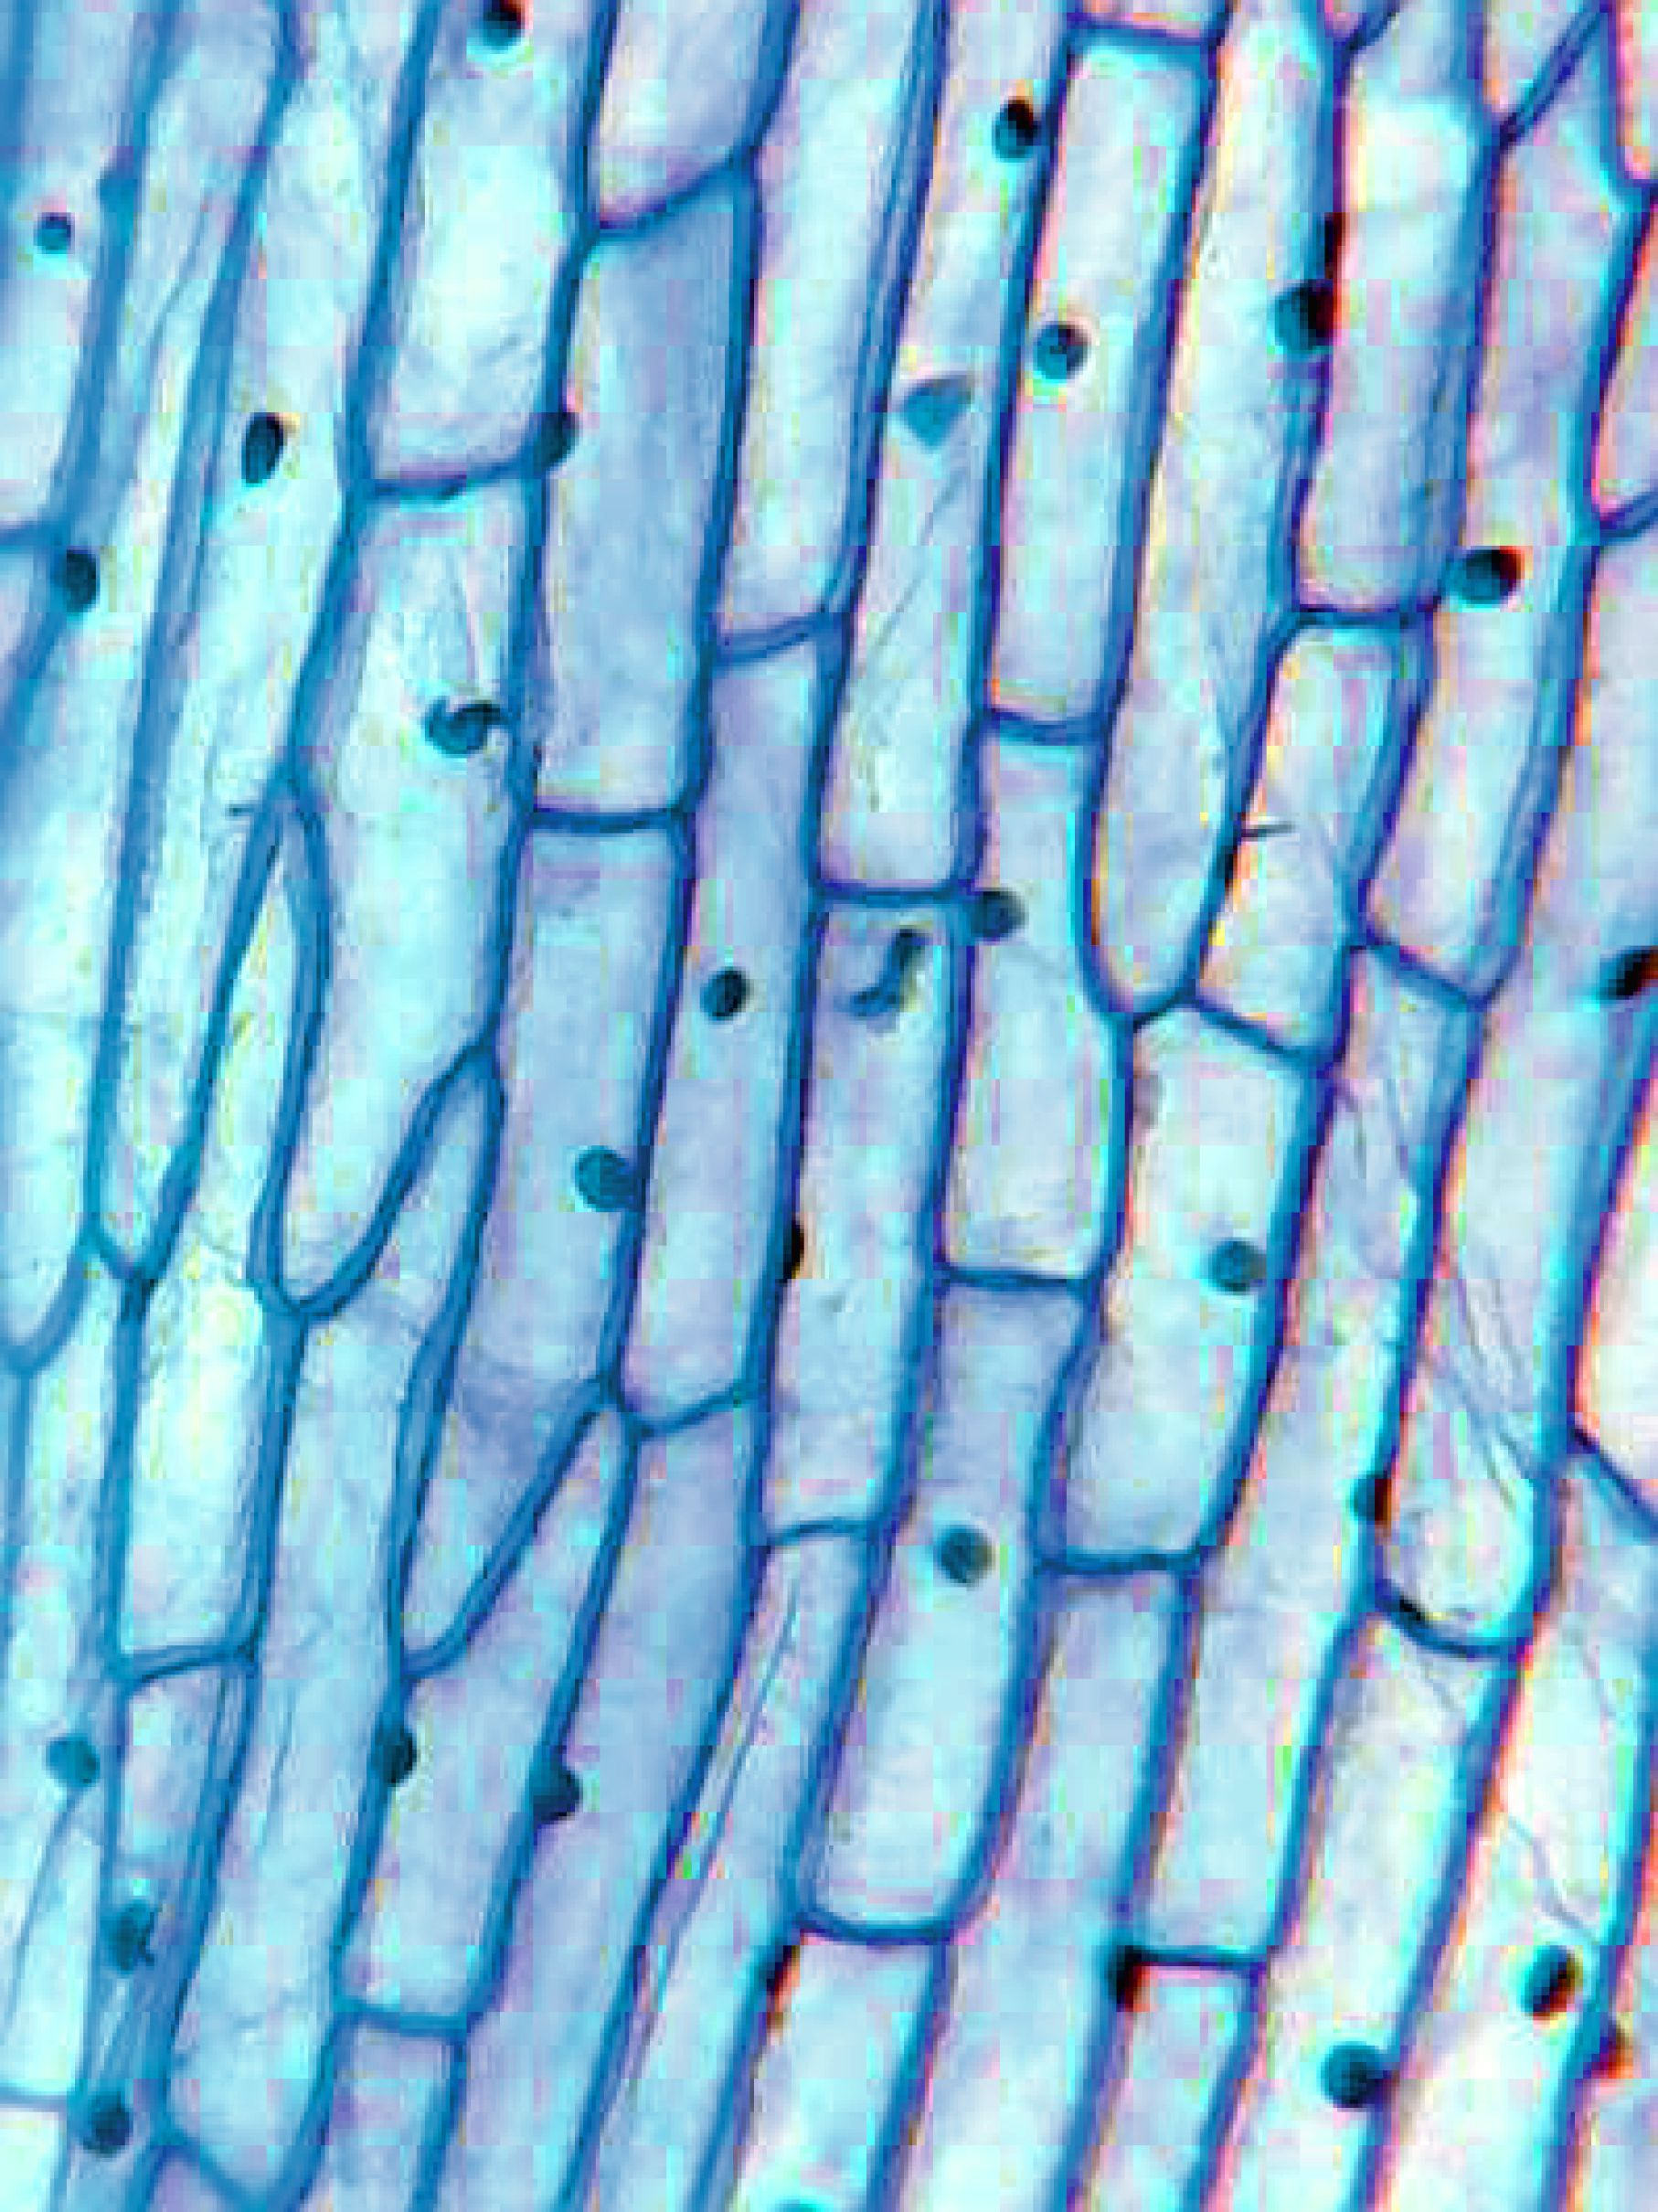 Onion Peel Cell Diagram